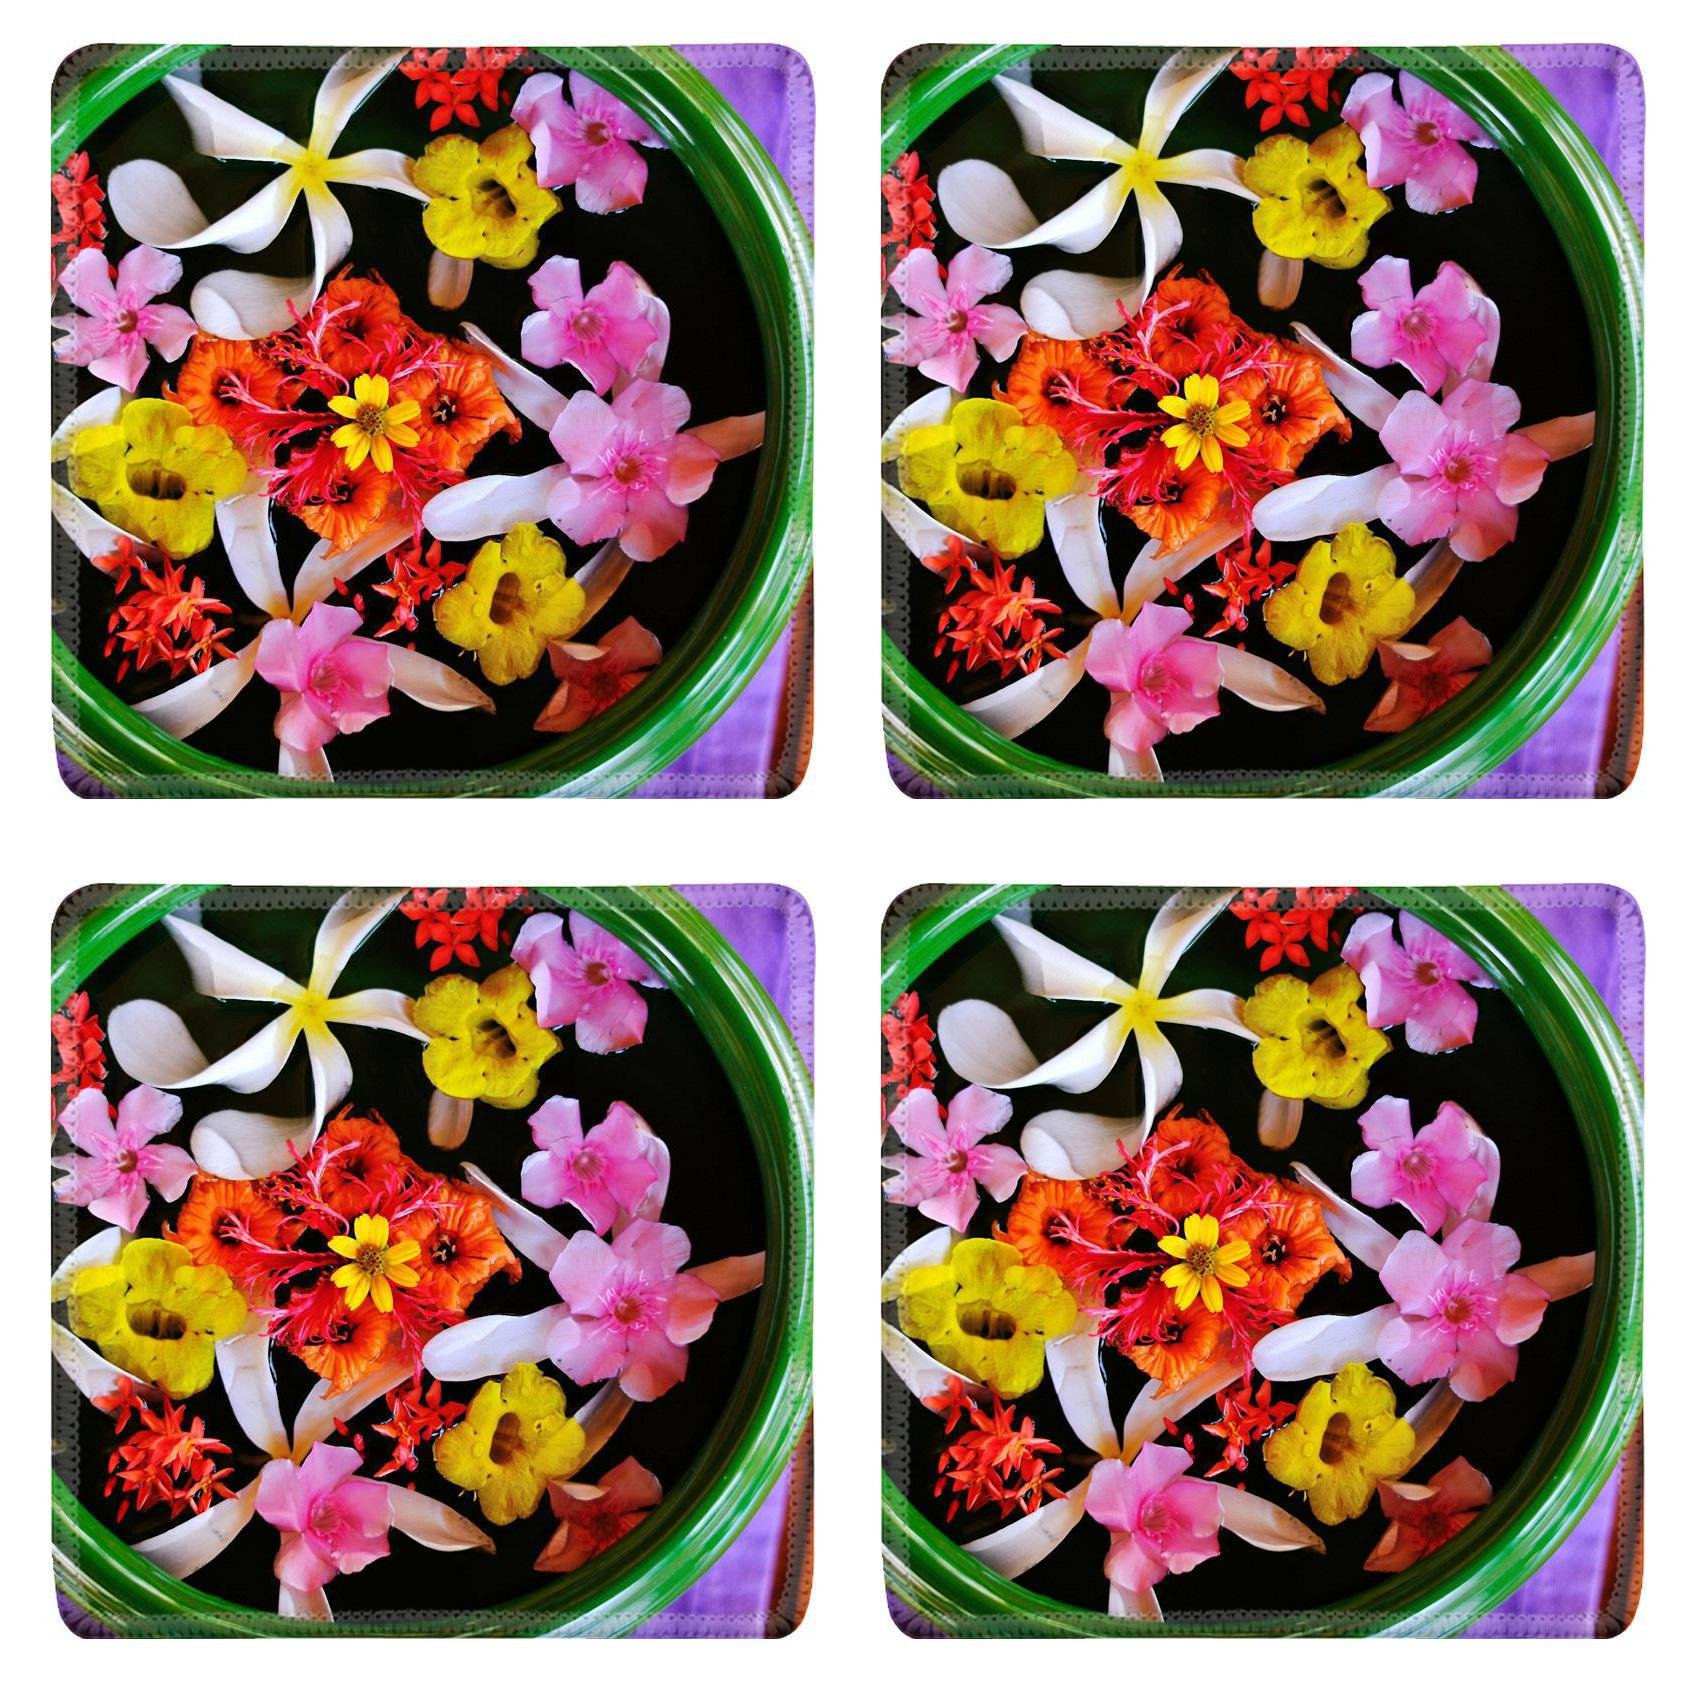 MSD Square Coasters Non-Slip Natural Rubber Desk Coasters design 20580754 ll water cup with beautiful flowers a variety of background colors in spa health and